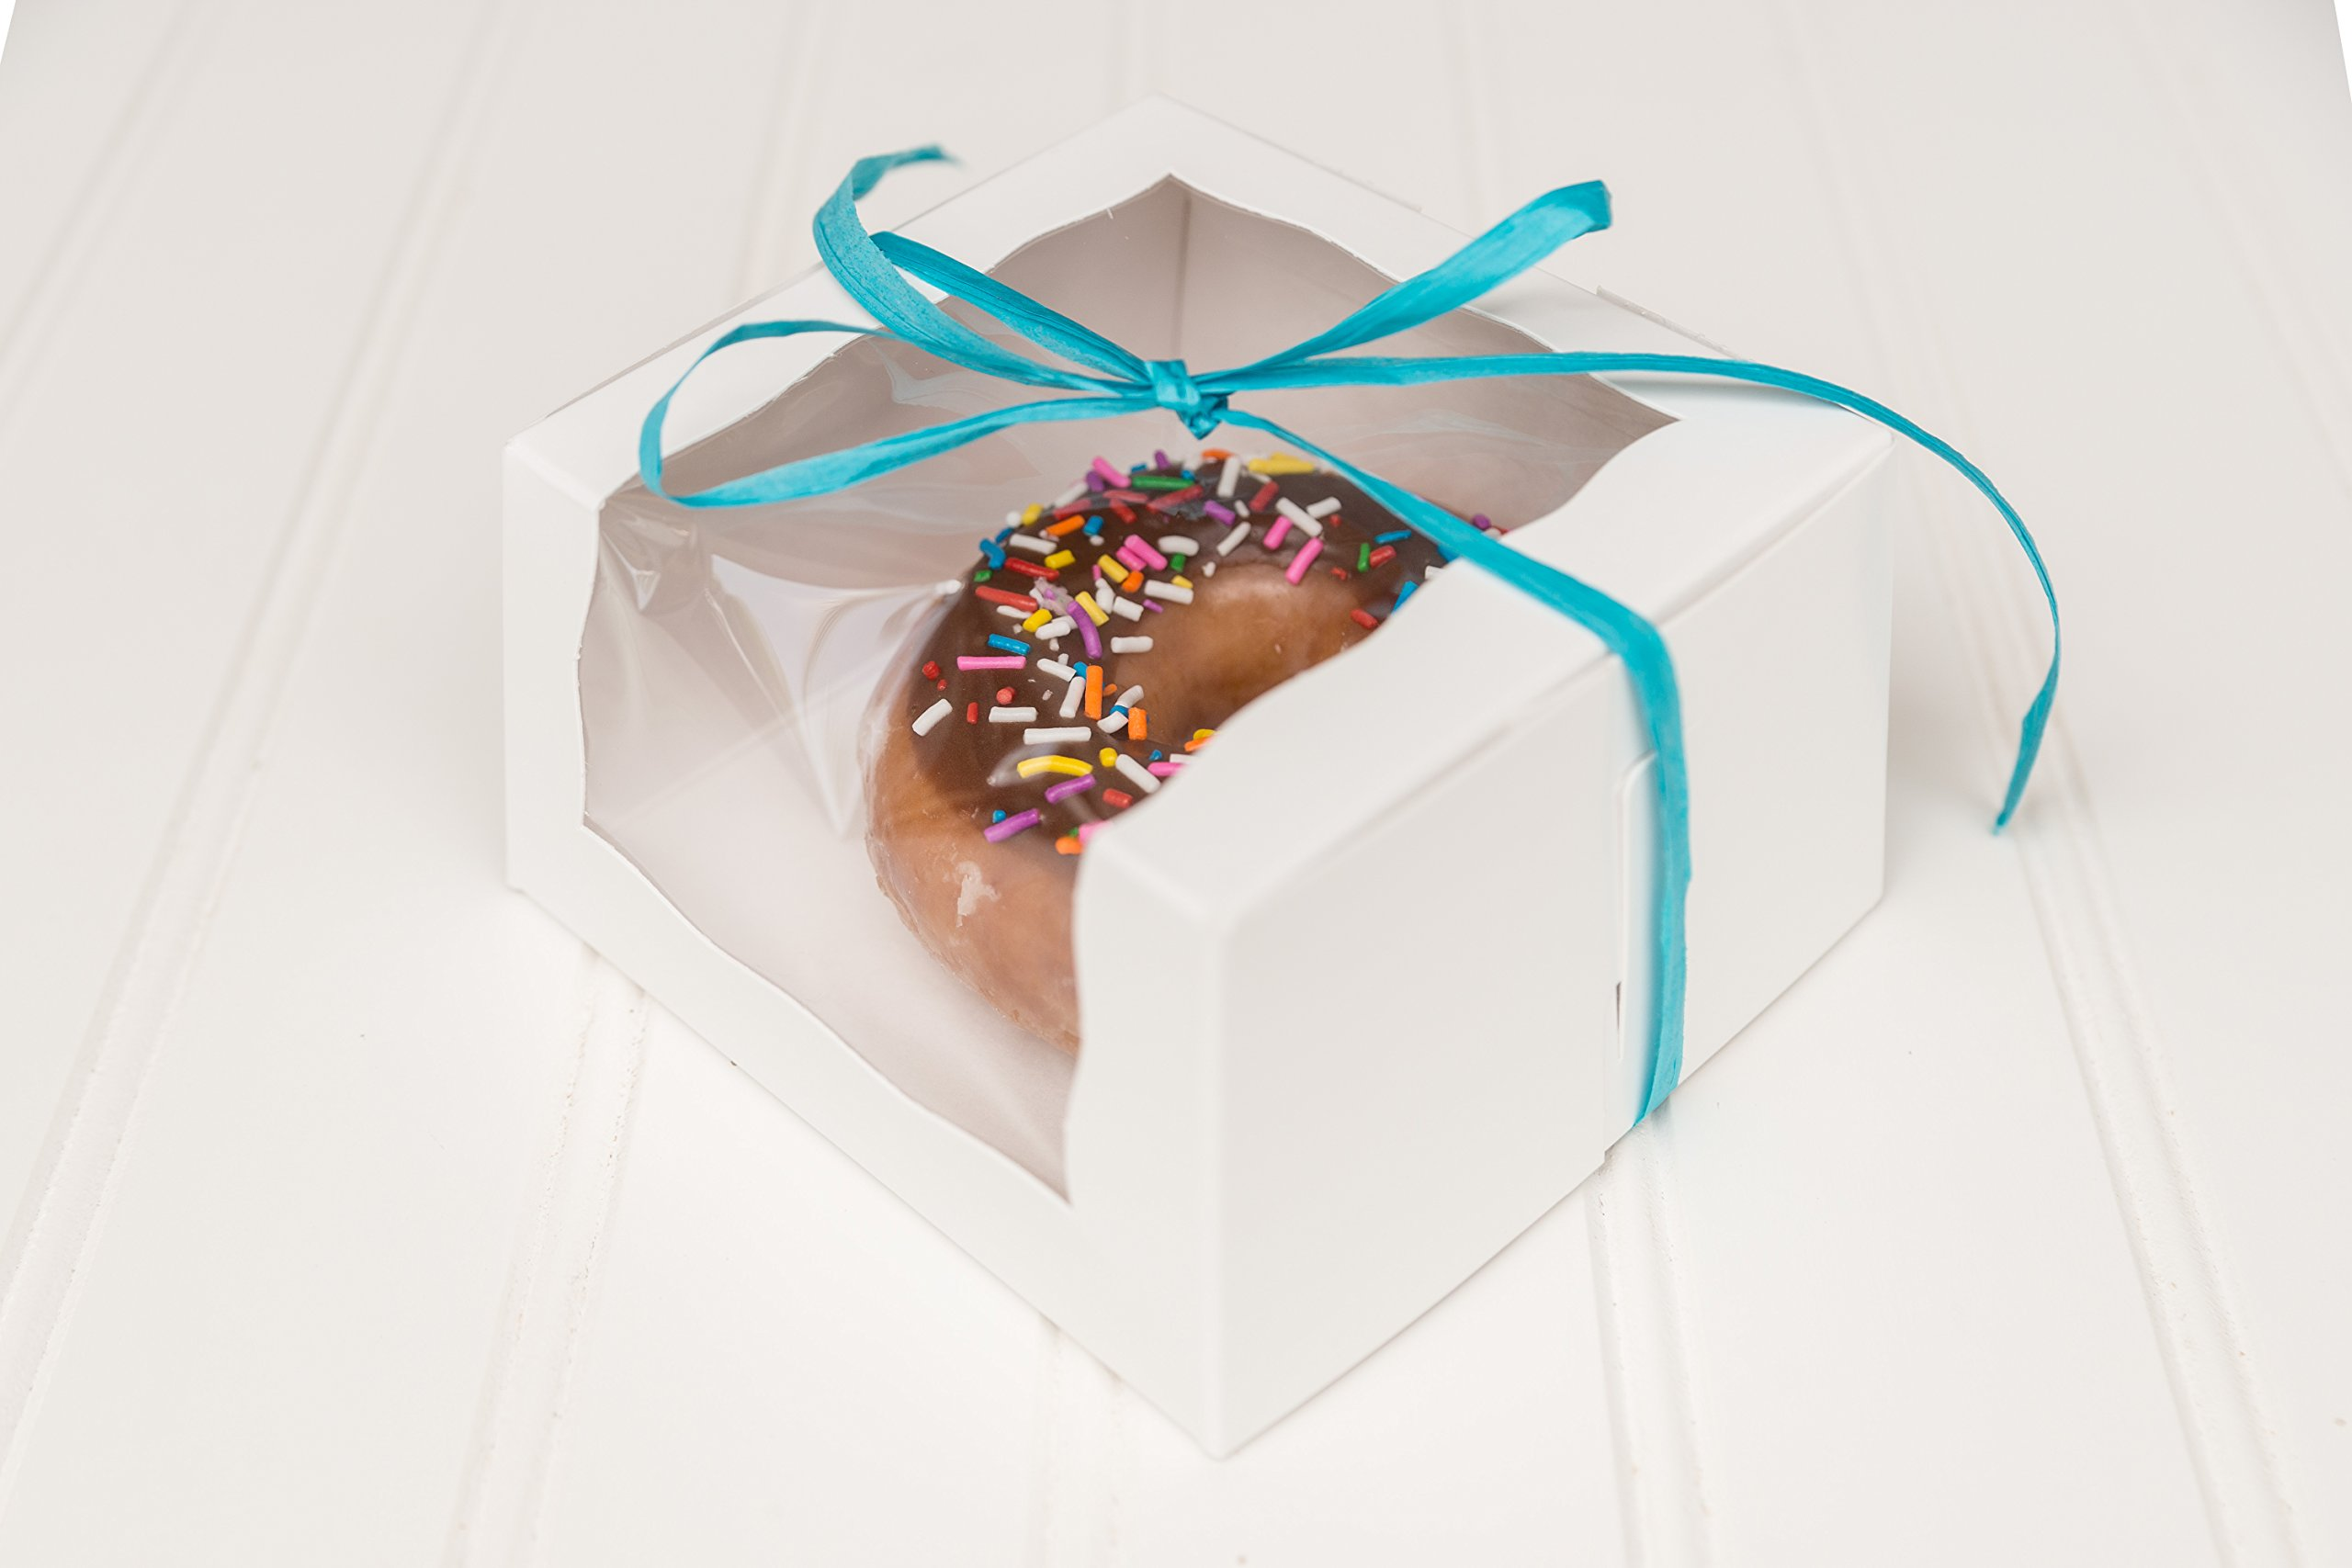 The Buttercup House 12 White Individual Donut Box with Wrap Around Window 4 x 4 x 2 1/2